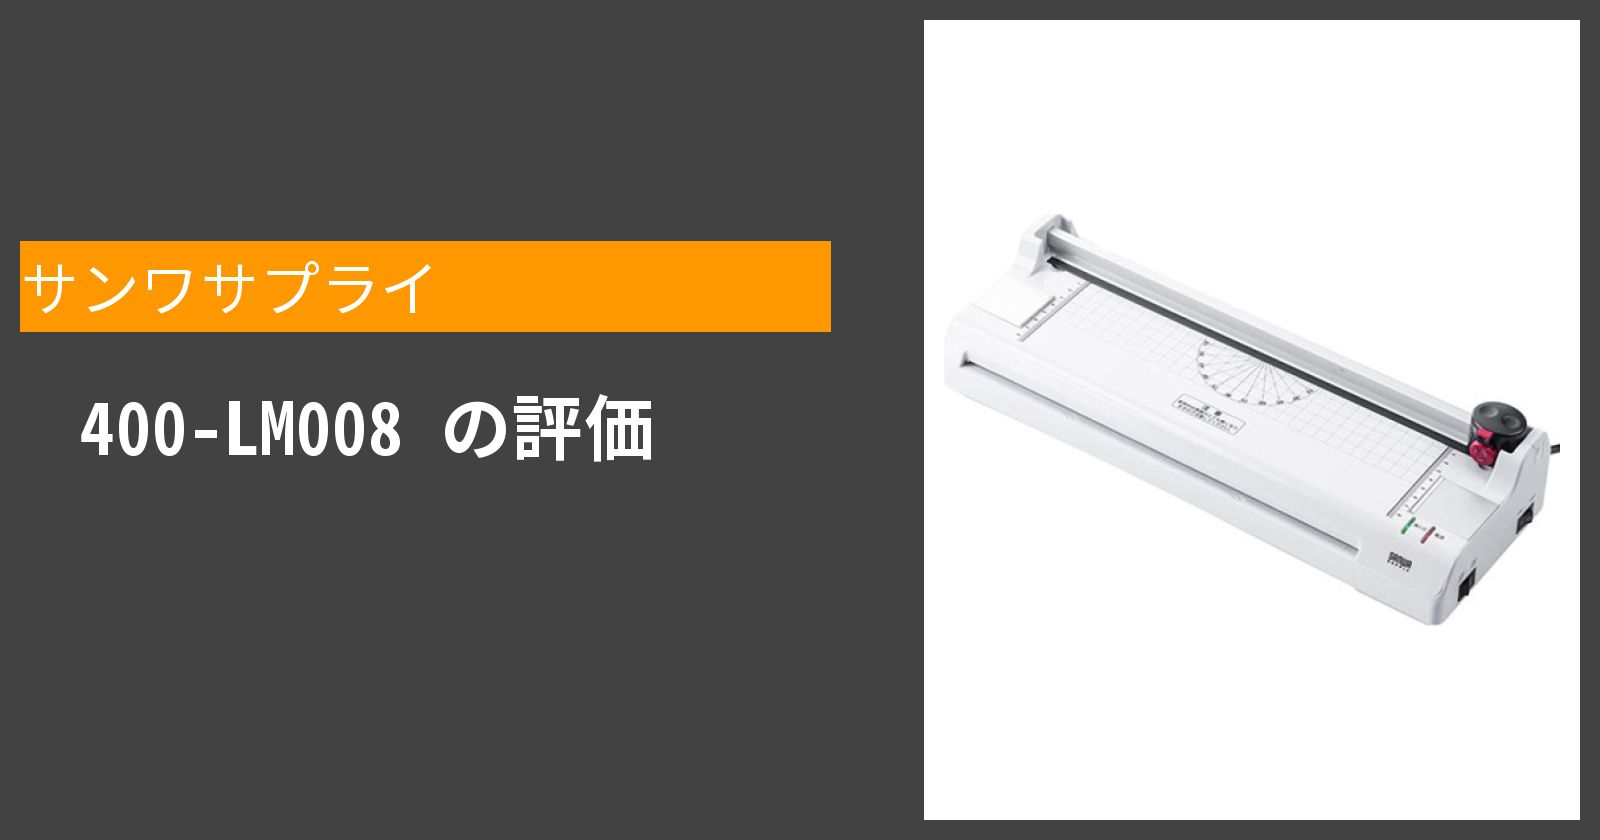 400-LM008を徹底評価